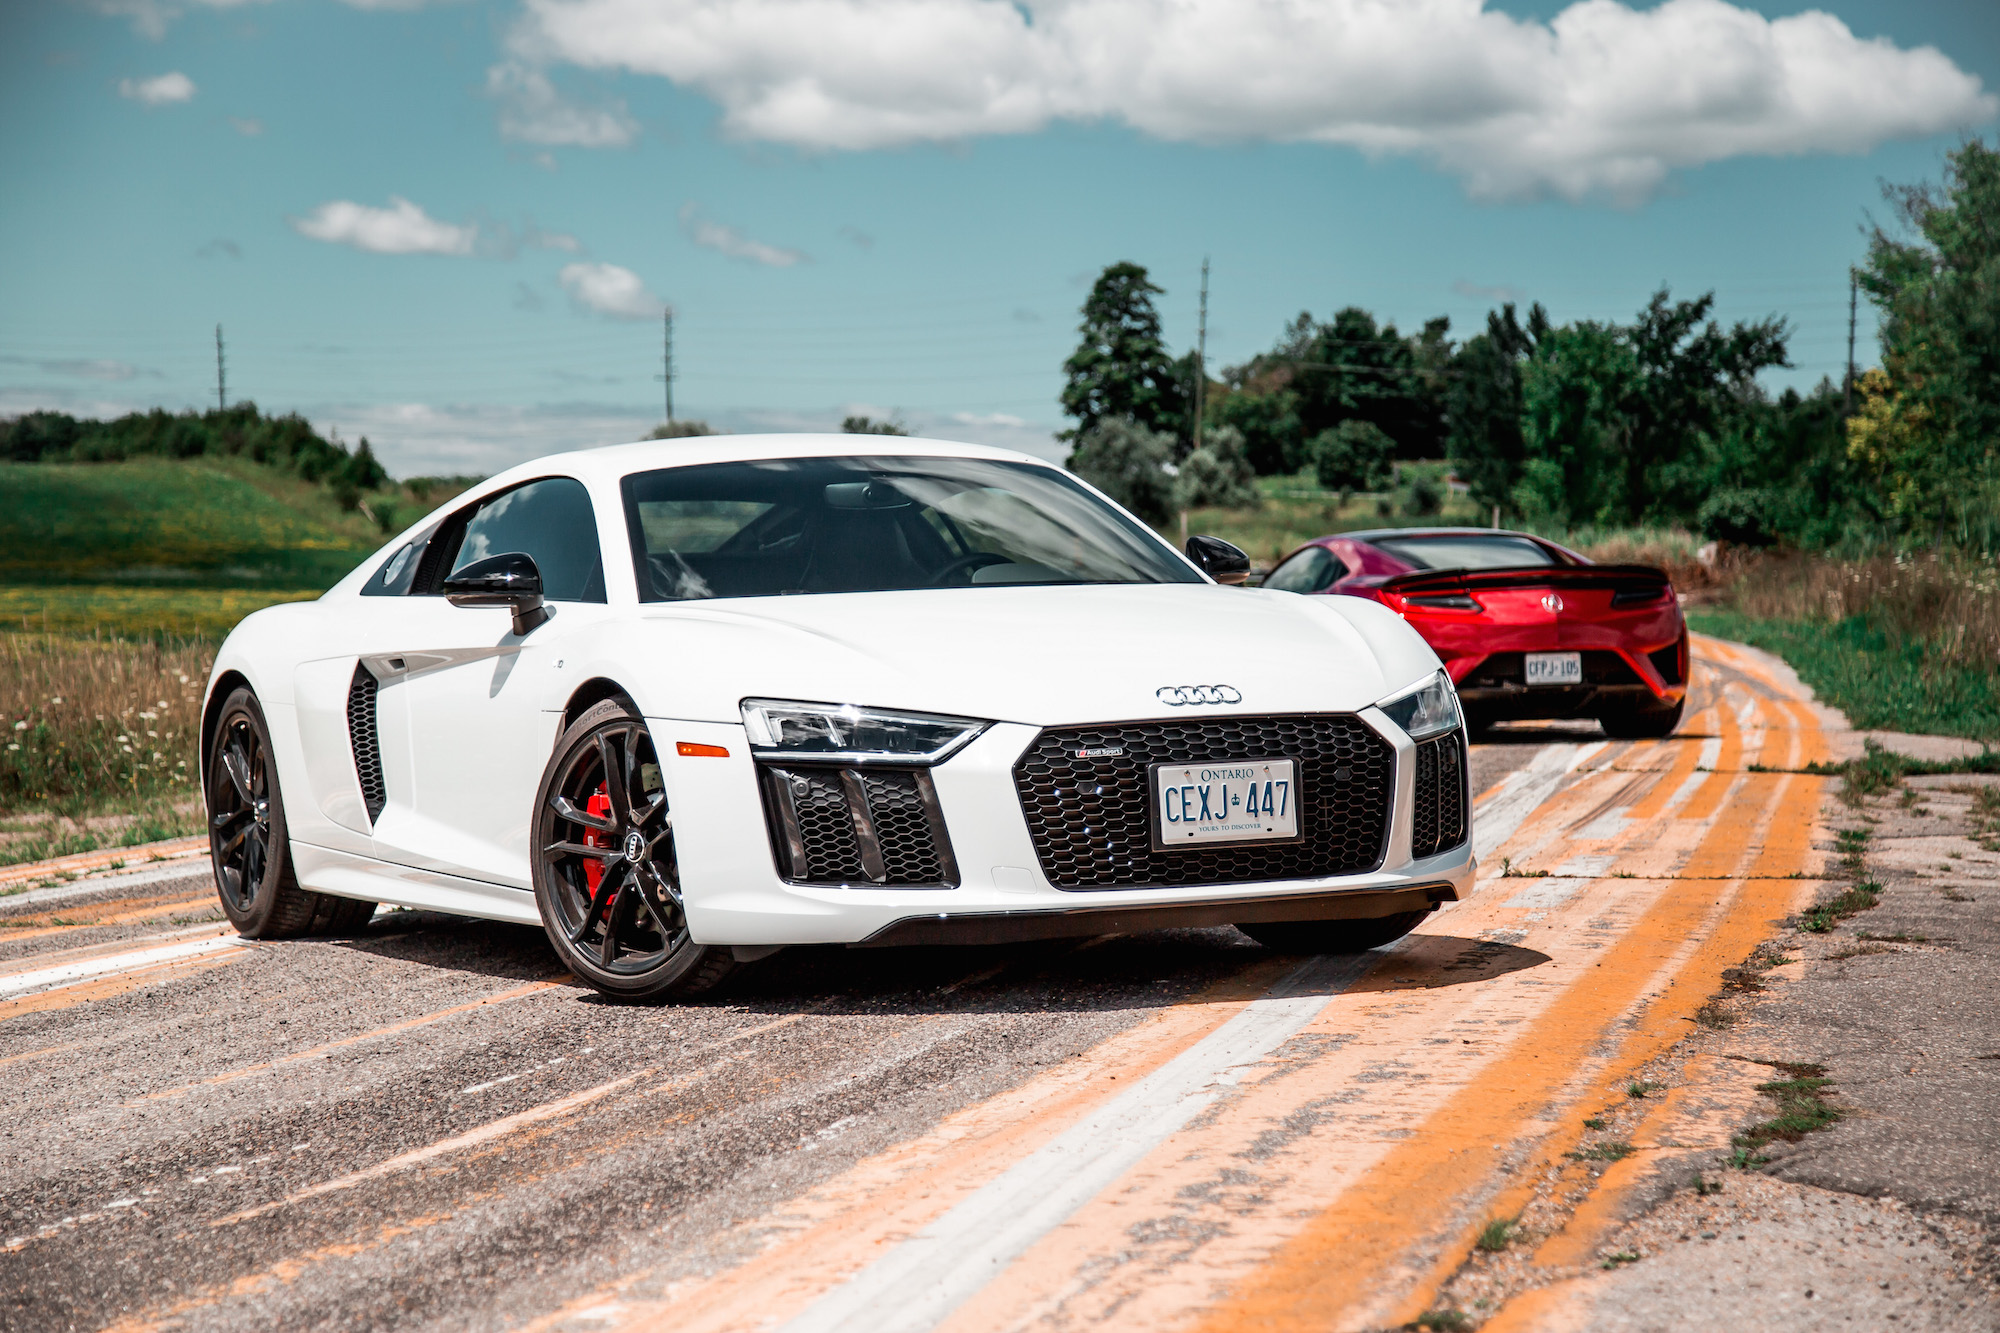 2018 acura nsx vs 2018 audi r8 rws comparison review car. Black Bedroom Furniture Sets. Home Design Ideas